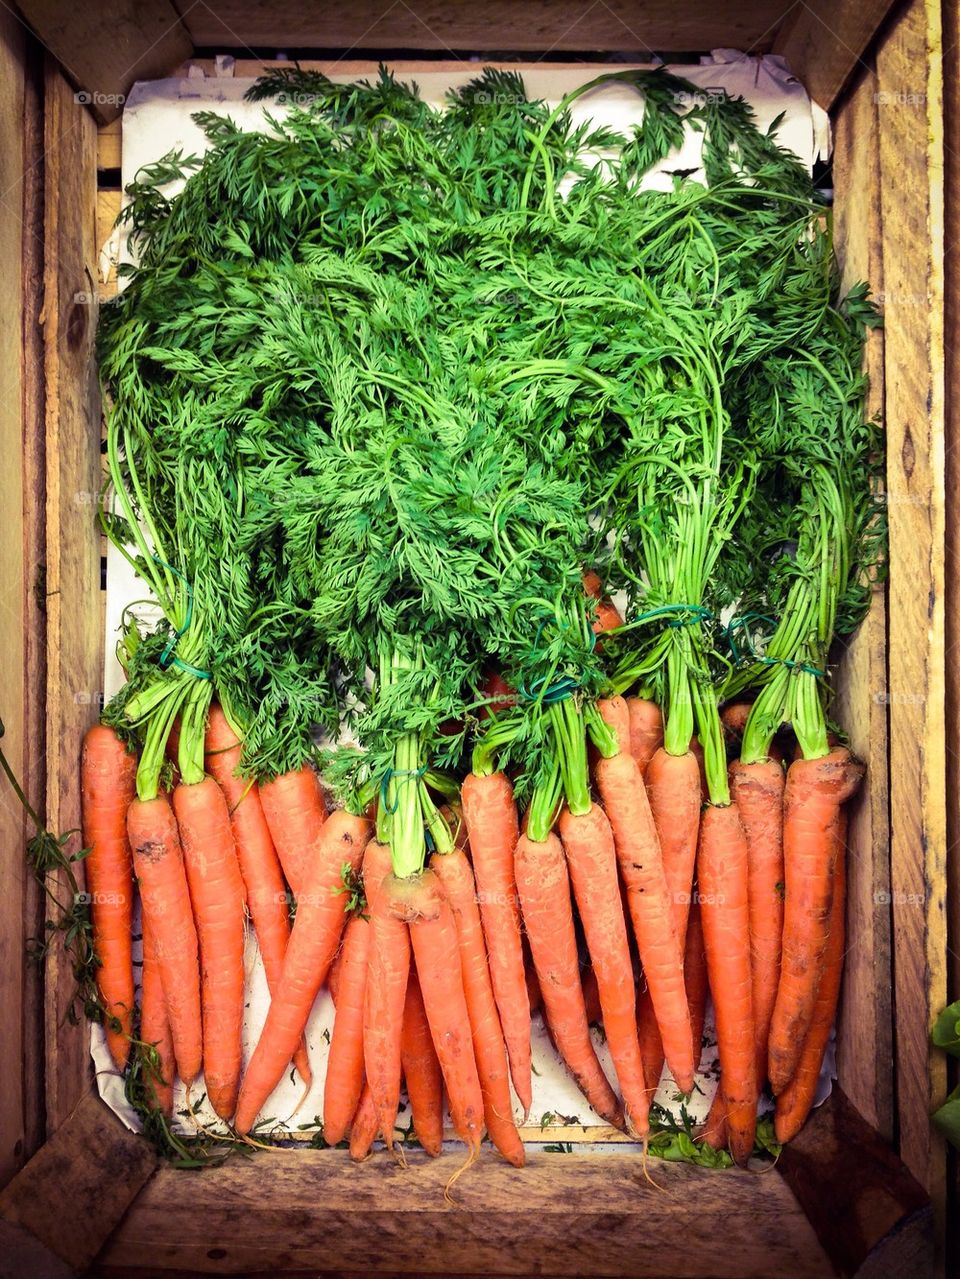 Carrots in container